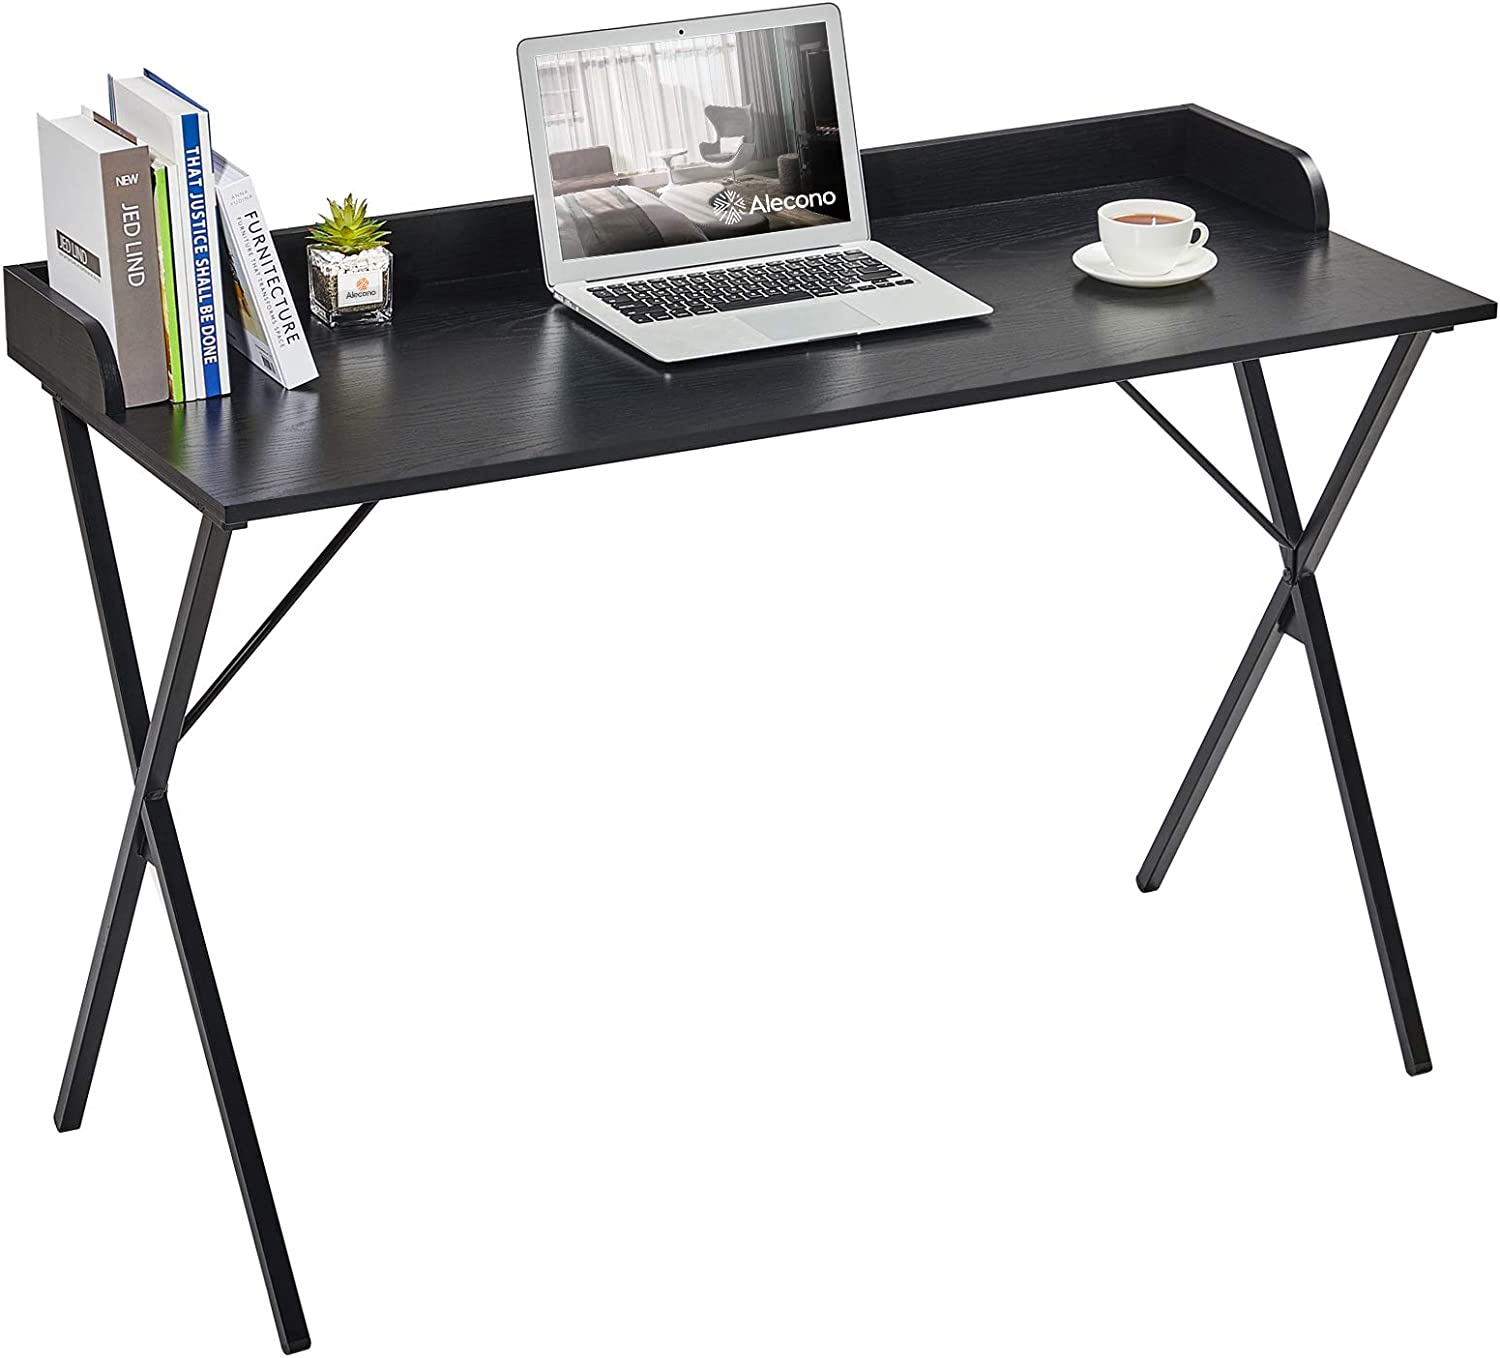 """Black Computer Desk, Alecono 47"""" Sturdy Writing Desk with Raised Edge Easy Assemble Metal Frame Study Desk for Home Office Writing Workstation, Black"""